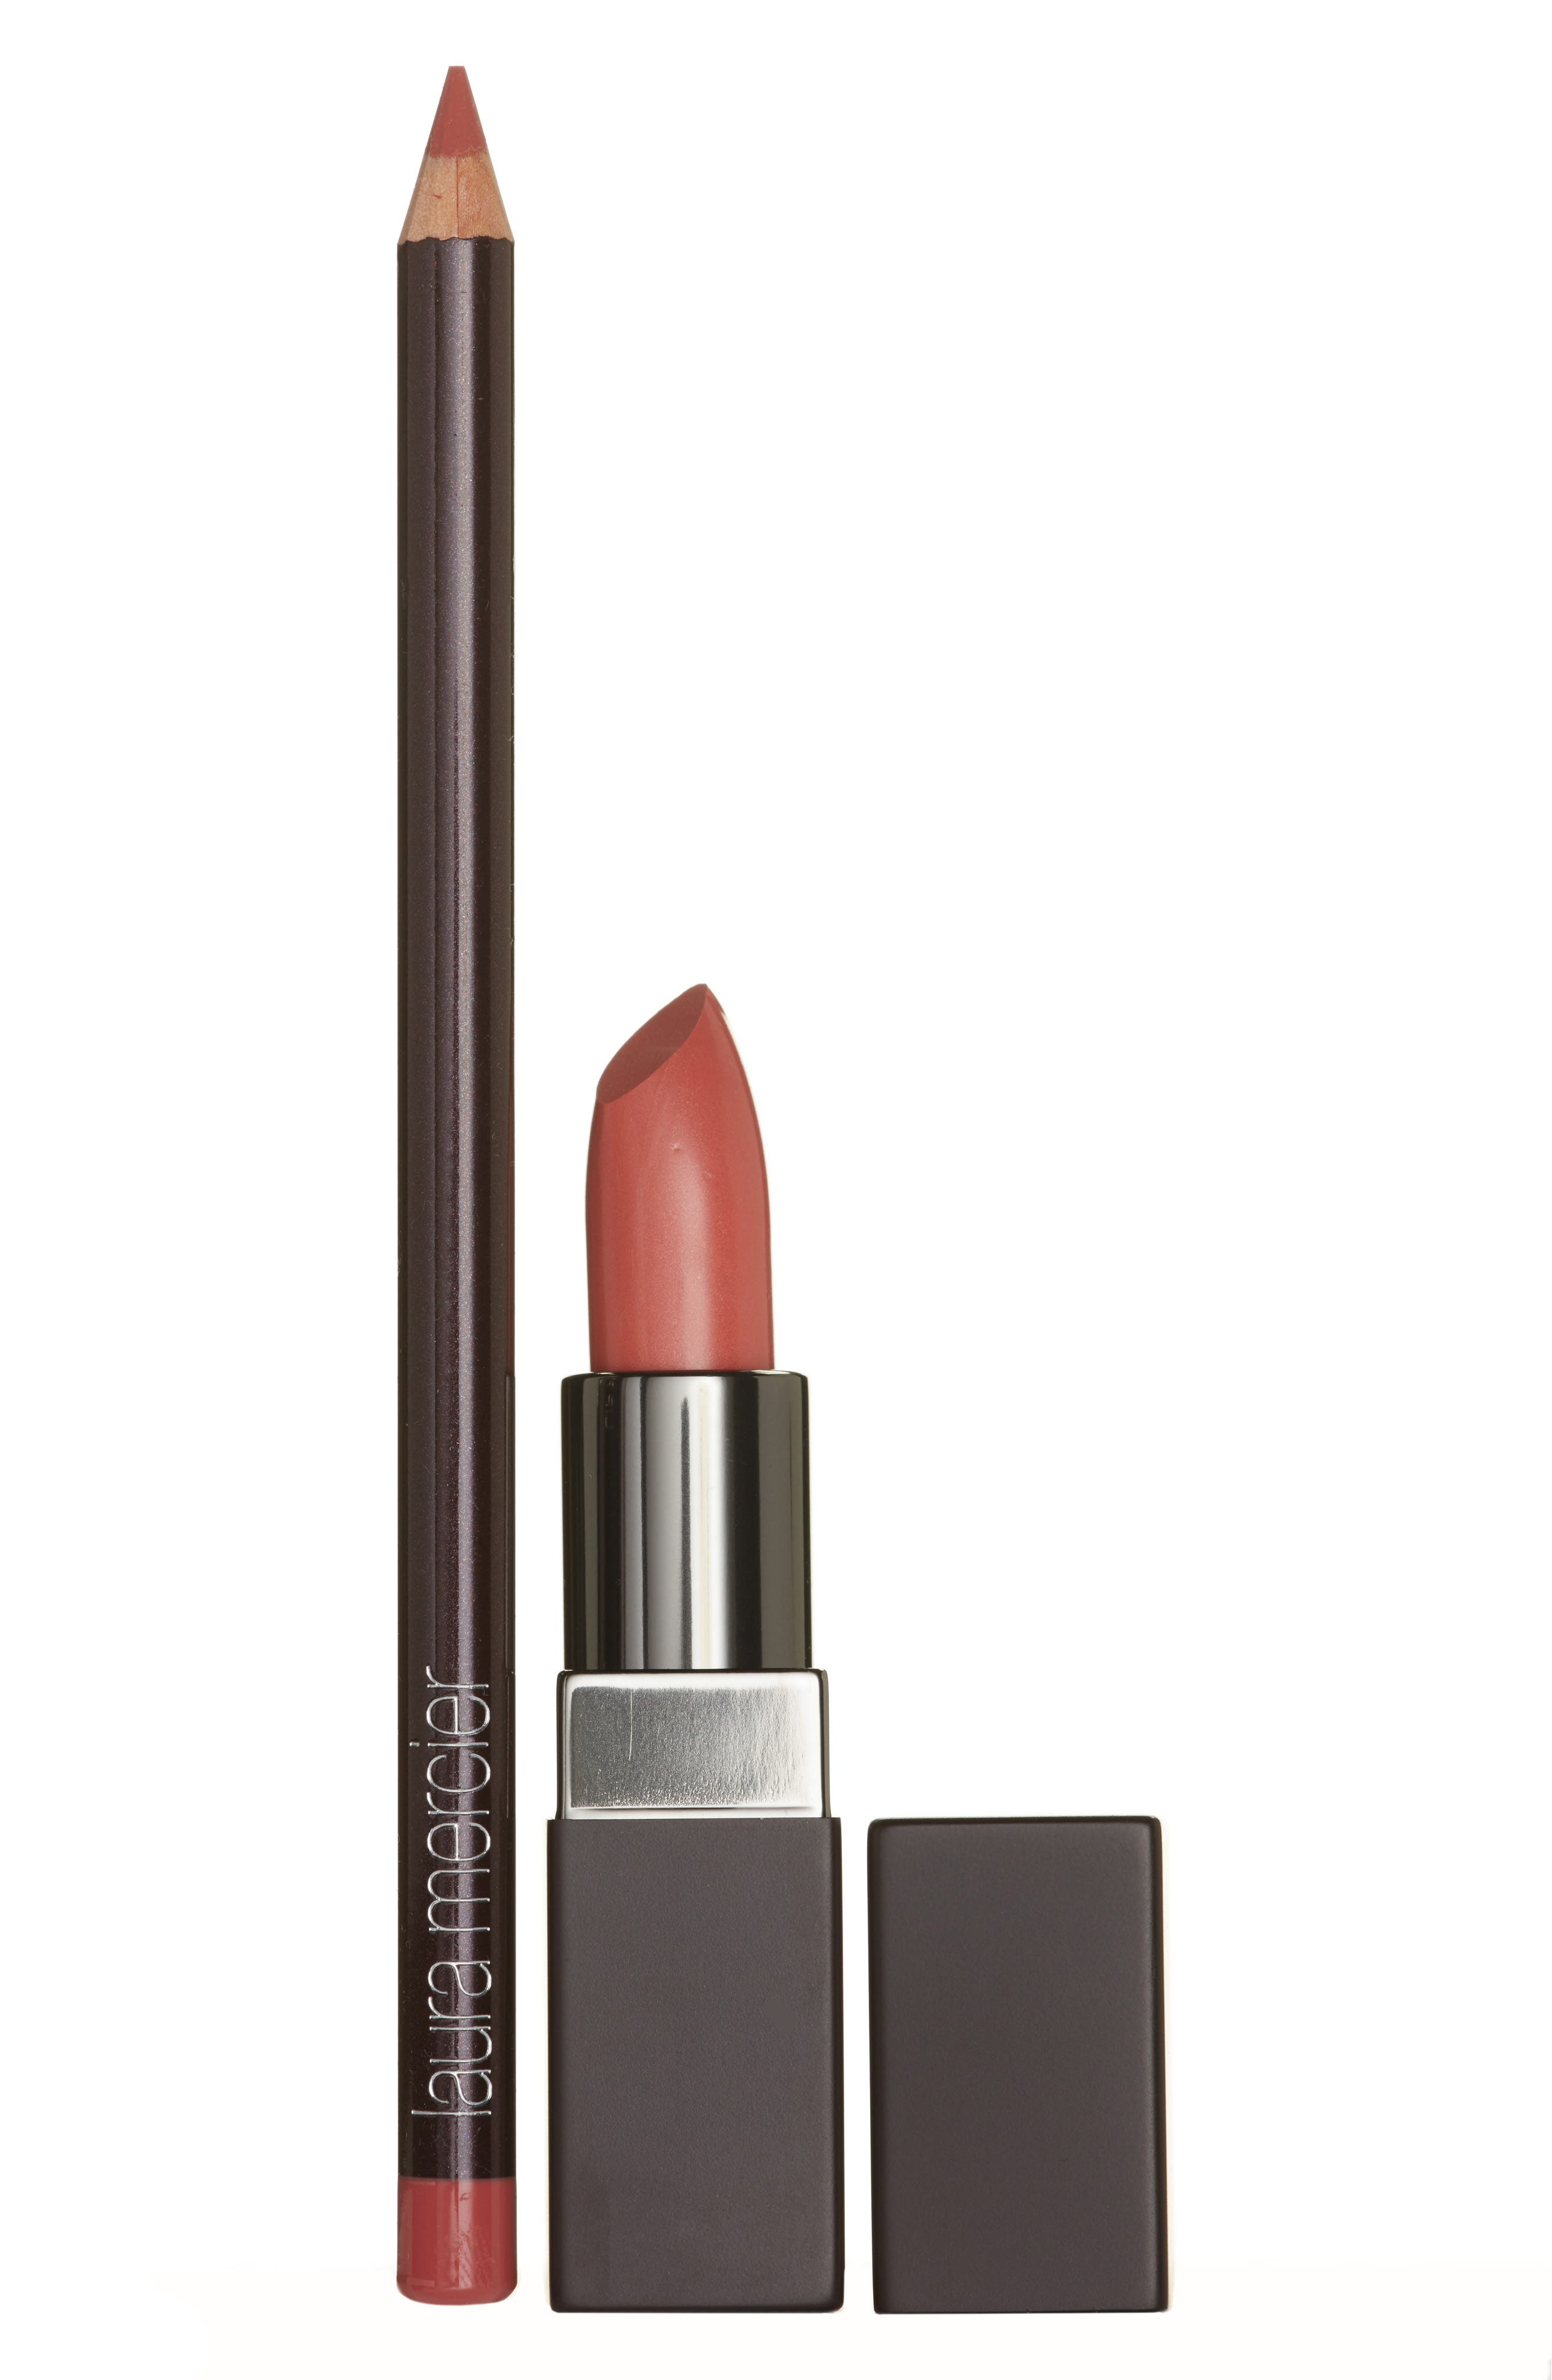 Laura Mercier Read My Lips Duo ($51 Value)